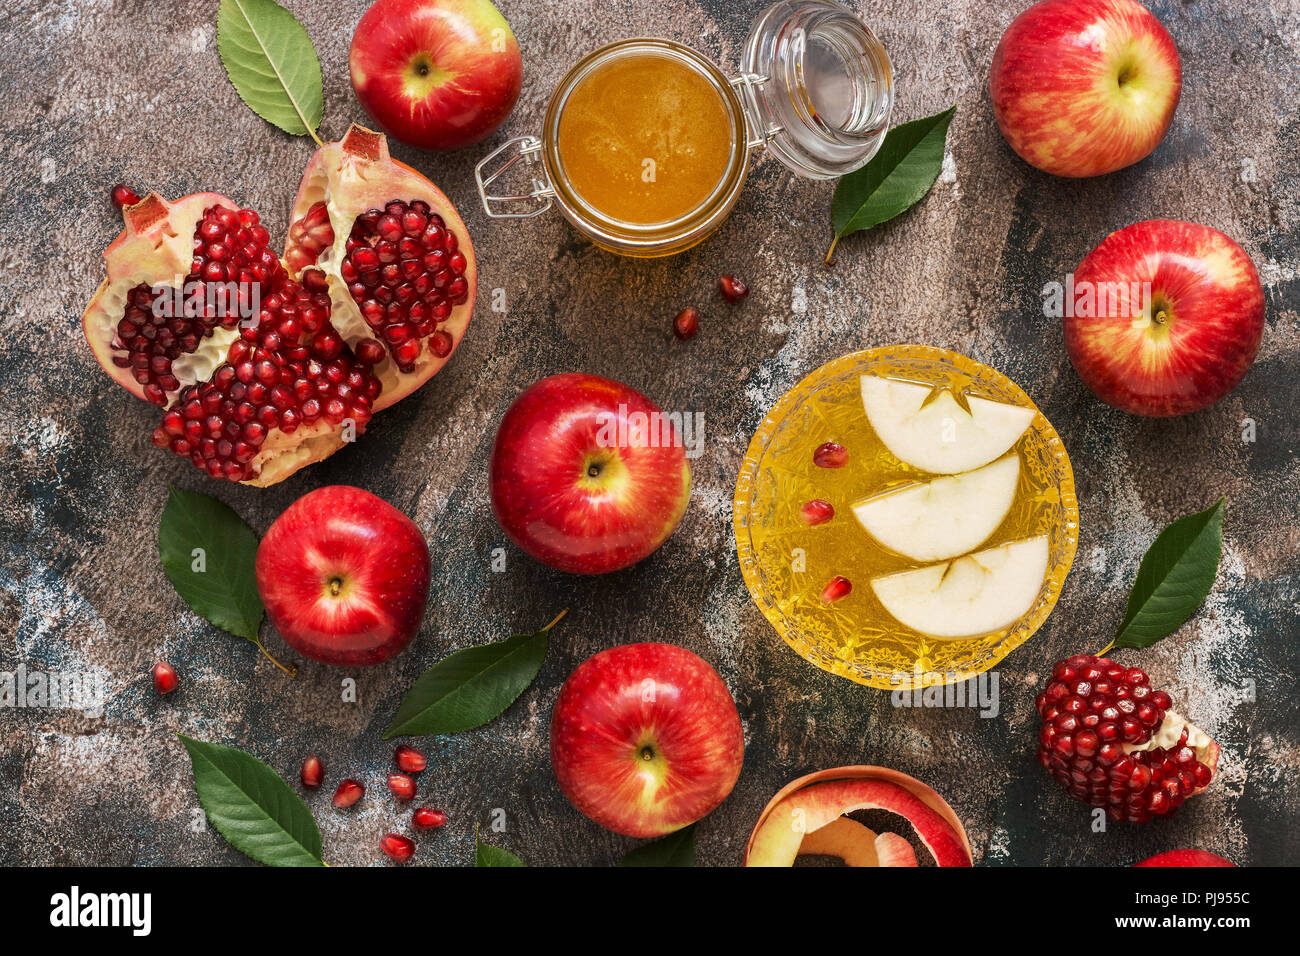 Red apples, pomegranate and honey. New Year - Rosh Hashana. Traditional Jewish food. Top view, overhead, flat lay - Stock Image